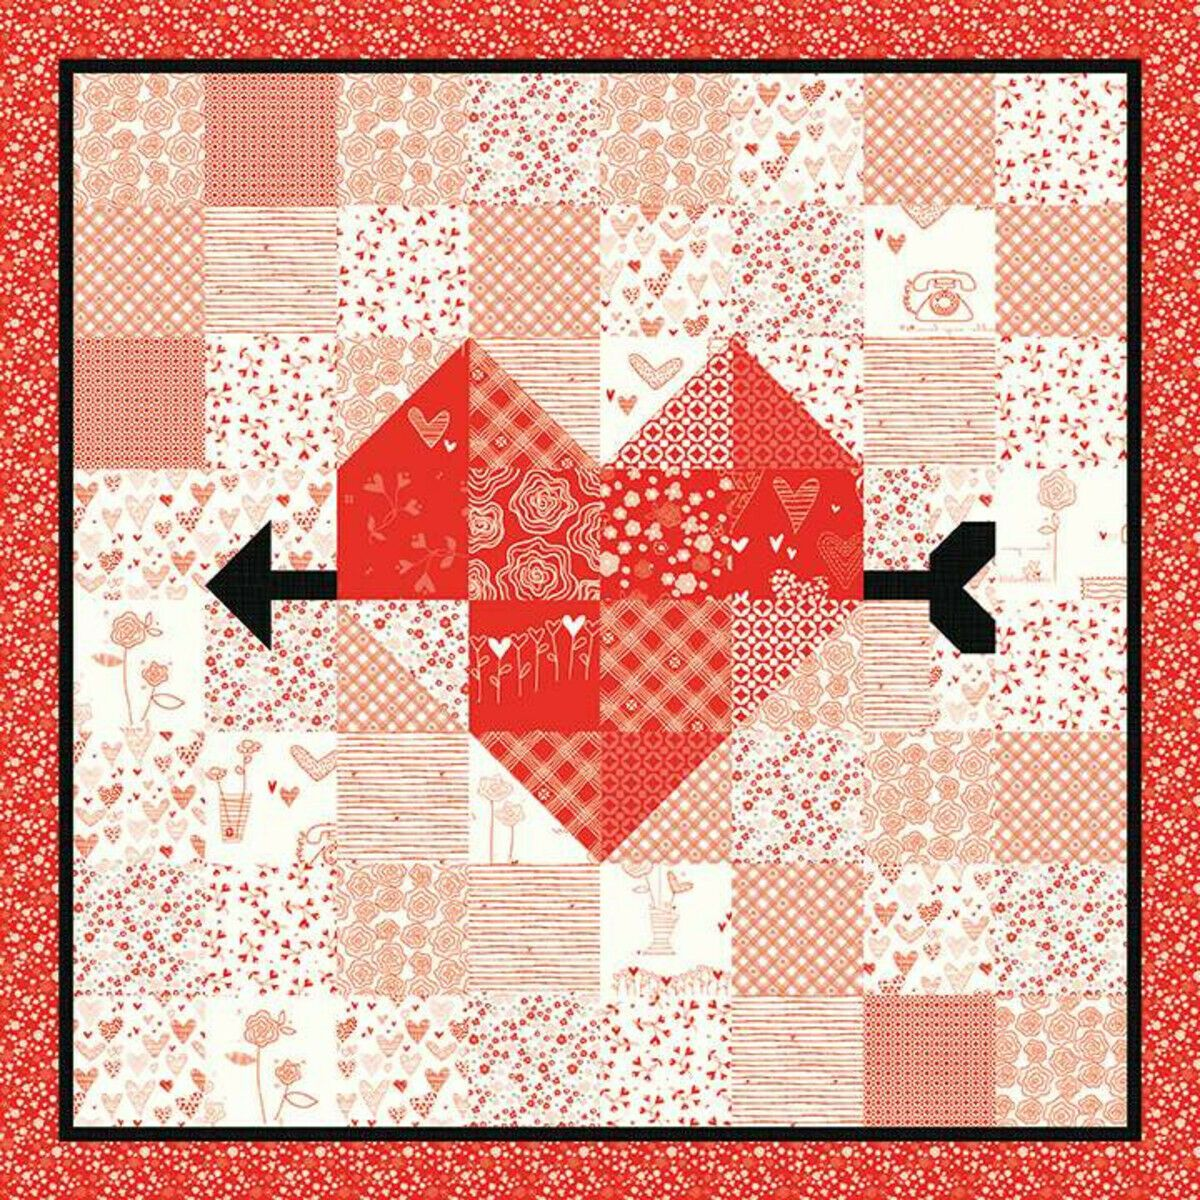 ARROW HEART QUILT and TABLE RUNNER PATTERN by Sandy Gervais